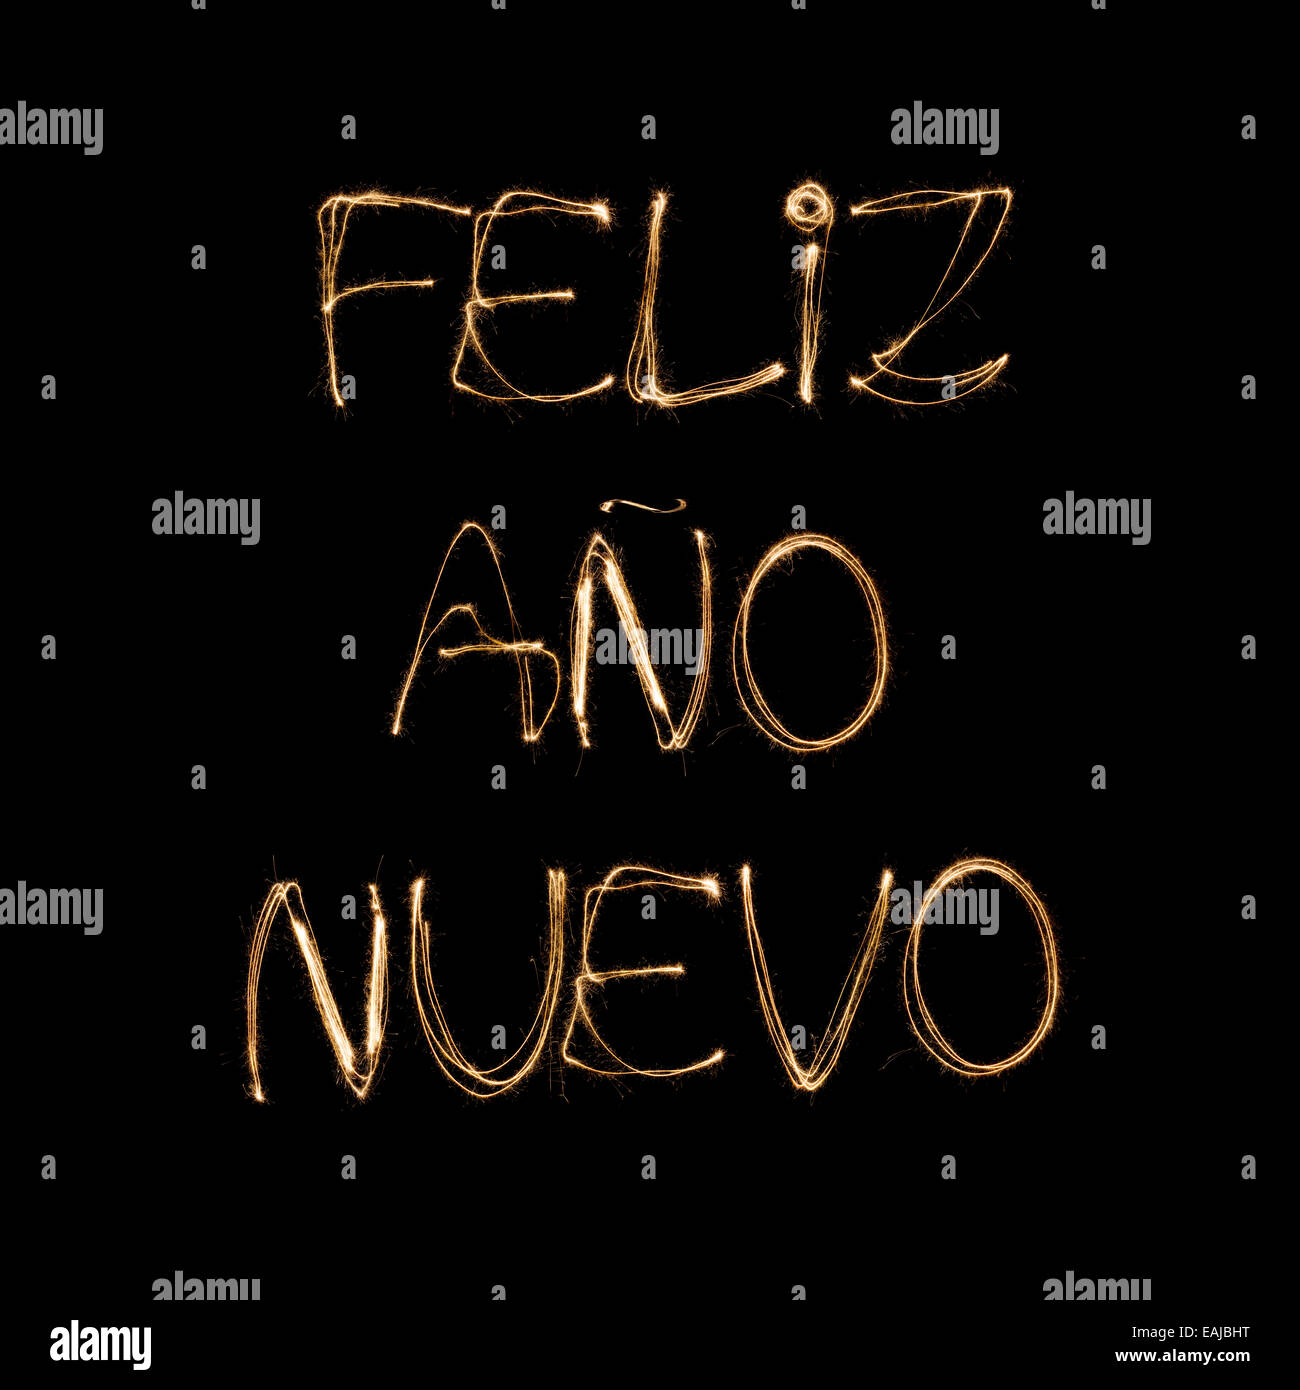 Feliz Ano Nuevo (Spanish Happy new Year) written with a sparkler isolated on black background - Stock Image